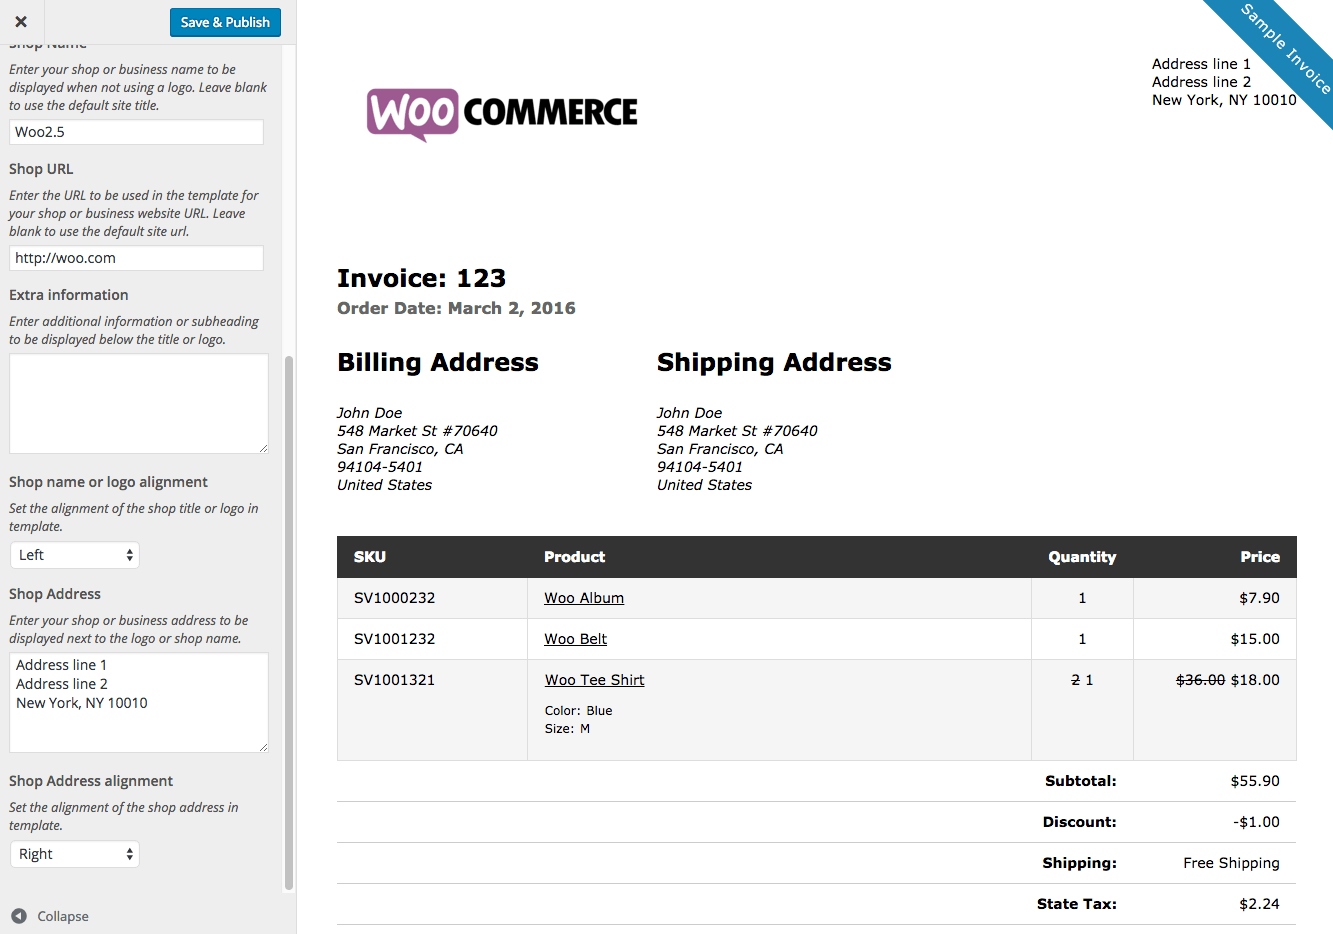 Usdgus  Remarkable Print Invoices Amp Packing Lists  Woocommerce With Foxy Woocommerce Print Invoices  Packing Lists Customizer With Divine House Rent Receipt Pdf Also Receipt For House Rent In Addition Rent Receipt Format Free Download And Receipt For Vehicle Sale As Well As Receipt Free Template Additionally Receipt Payment Format From Woocommercecom With Usdgus  Foxy Print Invoices Amp Packing Lists  Woocommerce With Divine Woocommerce Print Invoices  Packing Lists Customizer And Remarkable House Rent Receipt Pdf Also Receipt For House Rent In Addition Rent Receipt Format Free Download From Woocommercecom